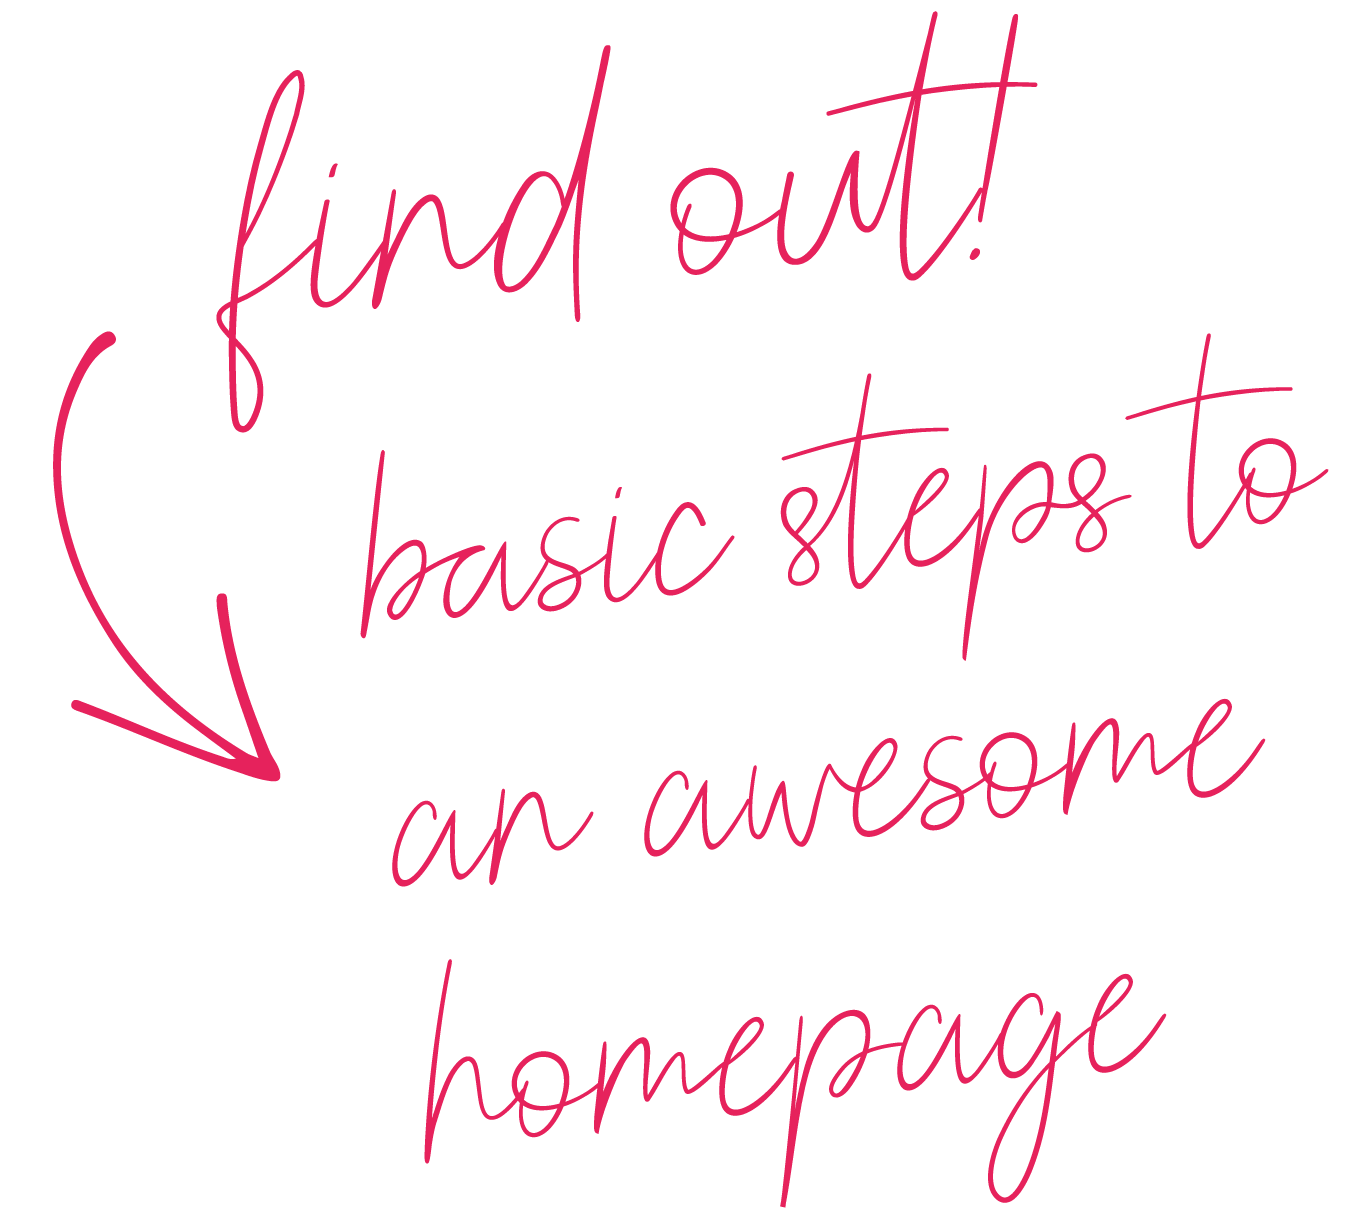 Basic Steps to an awesome homepage